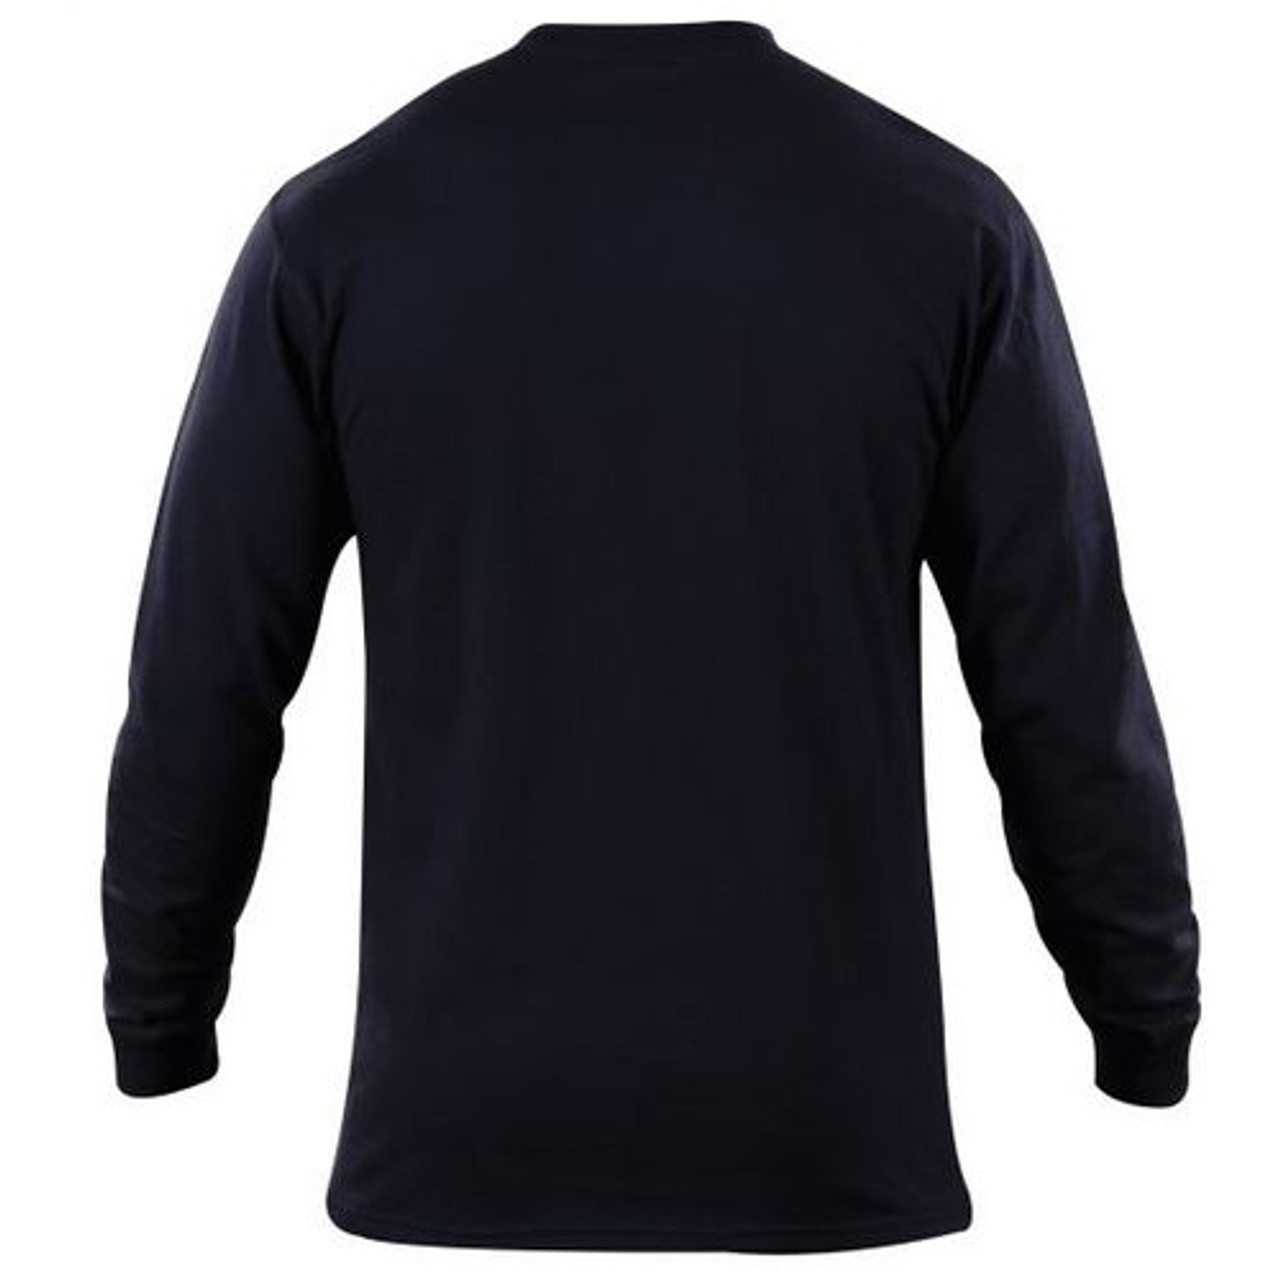 5.11 Tactical Station Wear Long Sleeve Uniform T-Shirt, Sized to Match PDU and TDU Gear, Cotton, available in Fire Navy, 40052